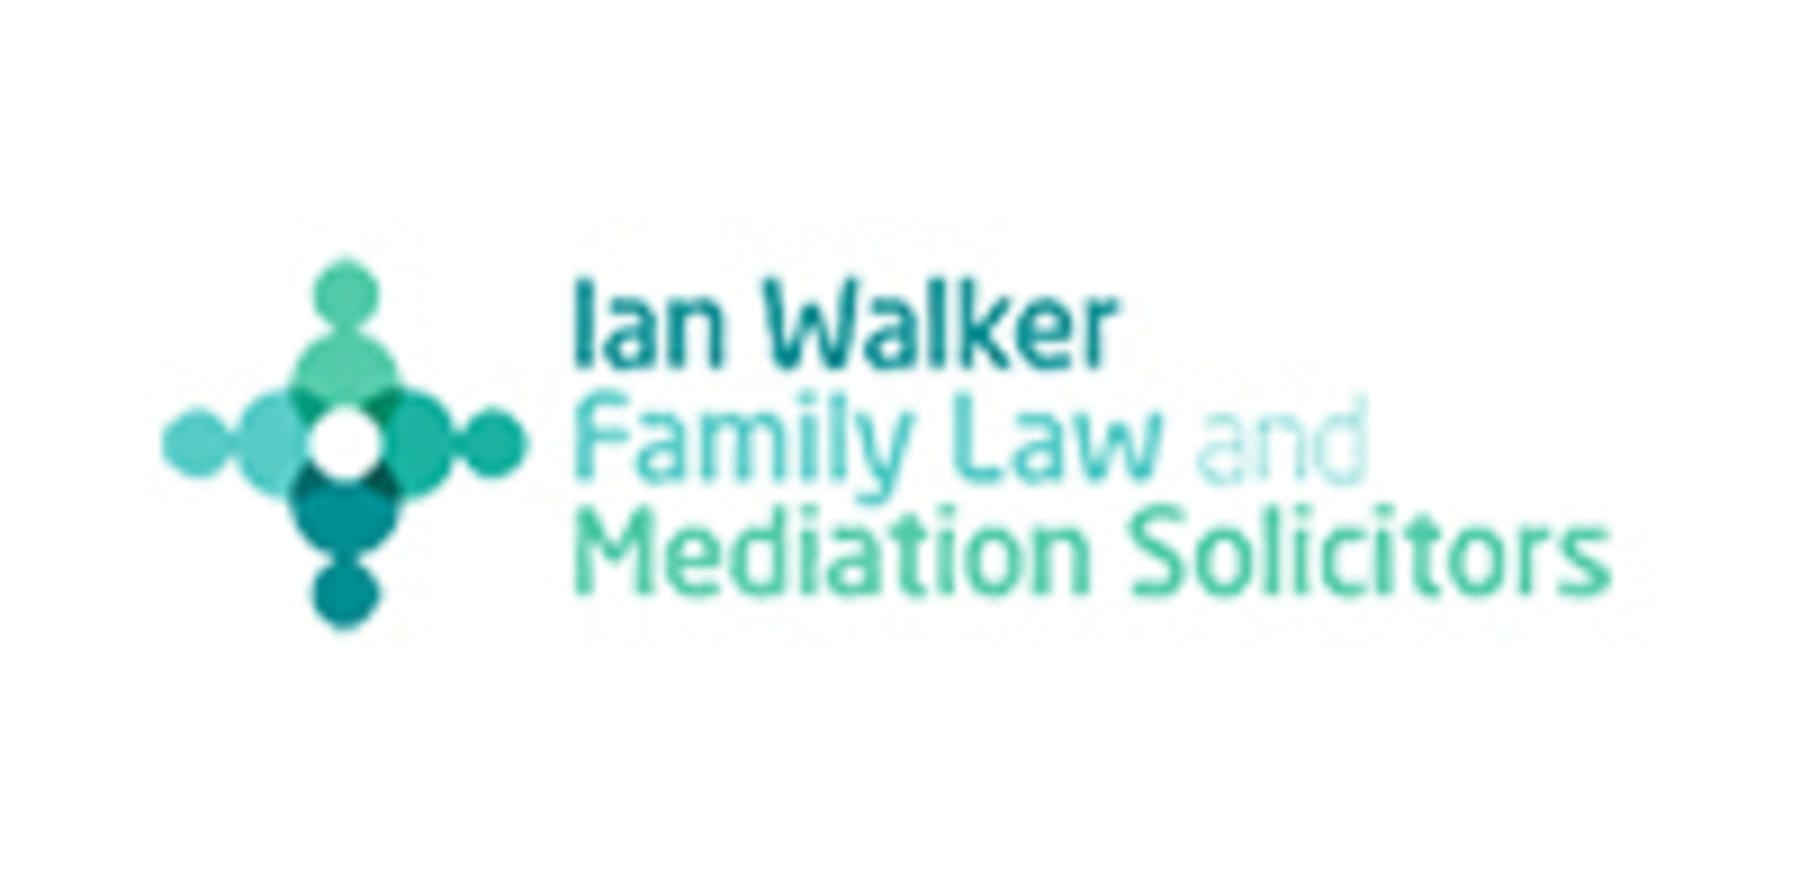 Ian Walker Family Law and Mediation